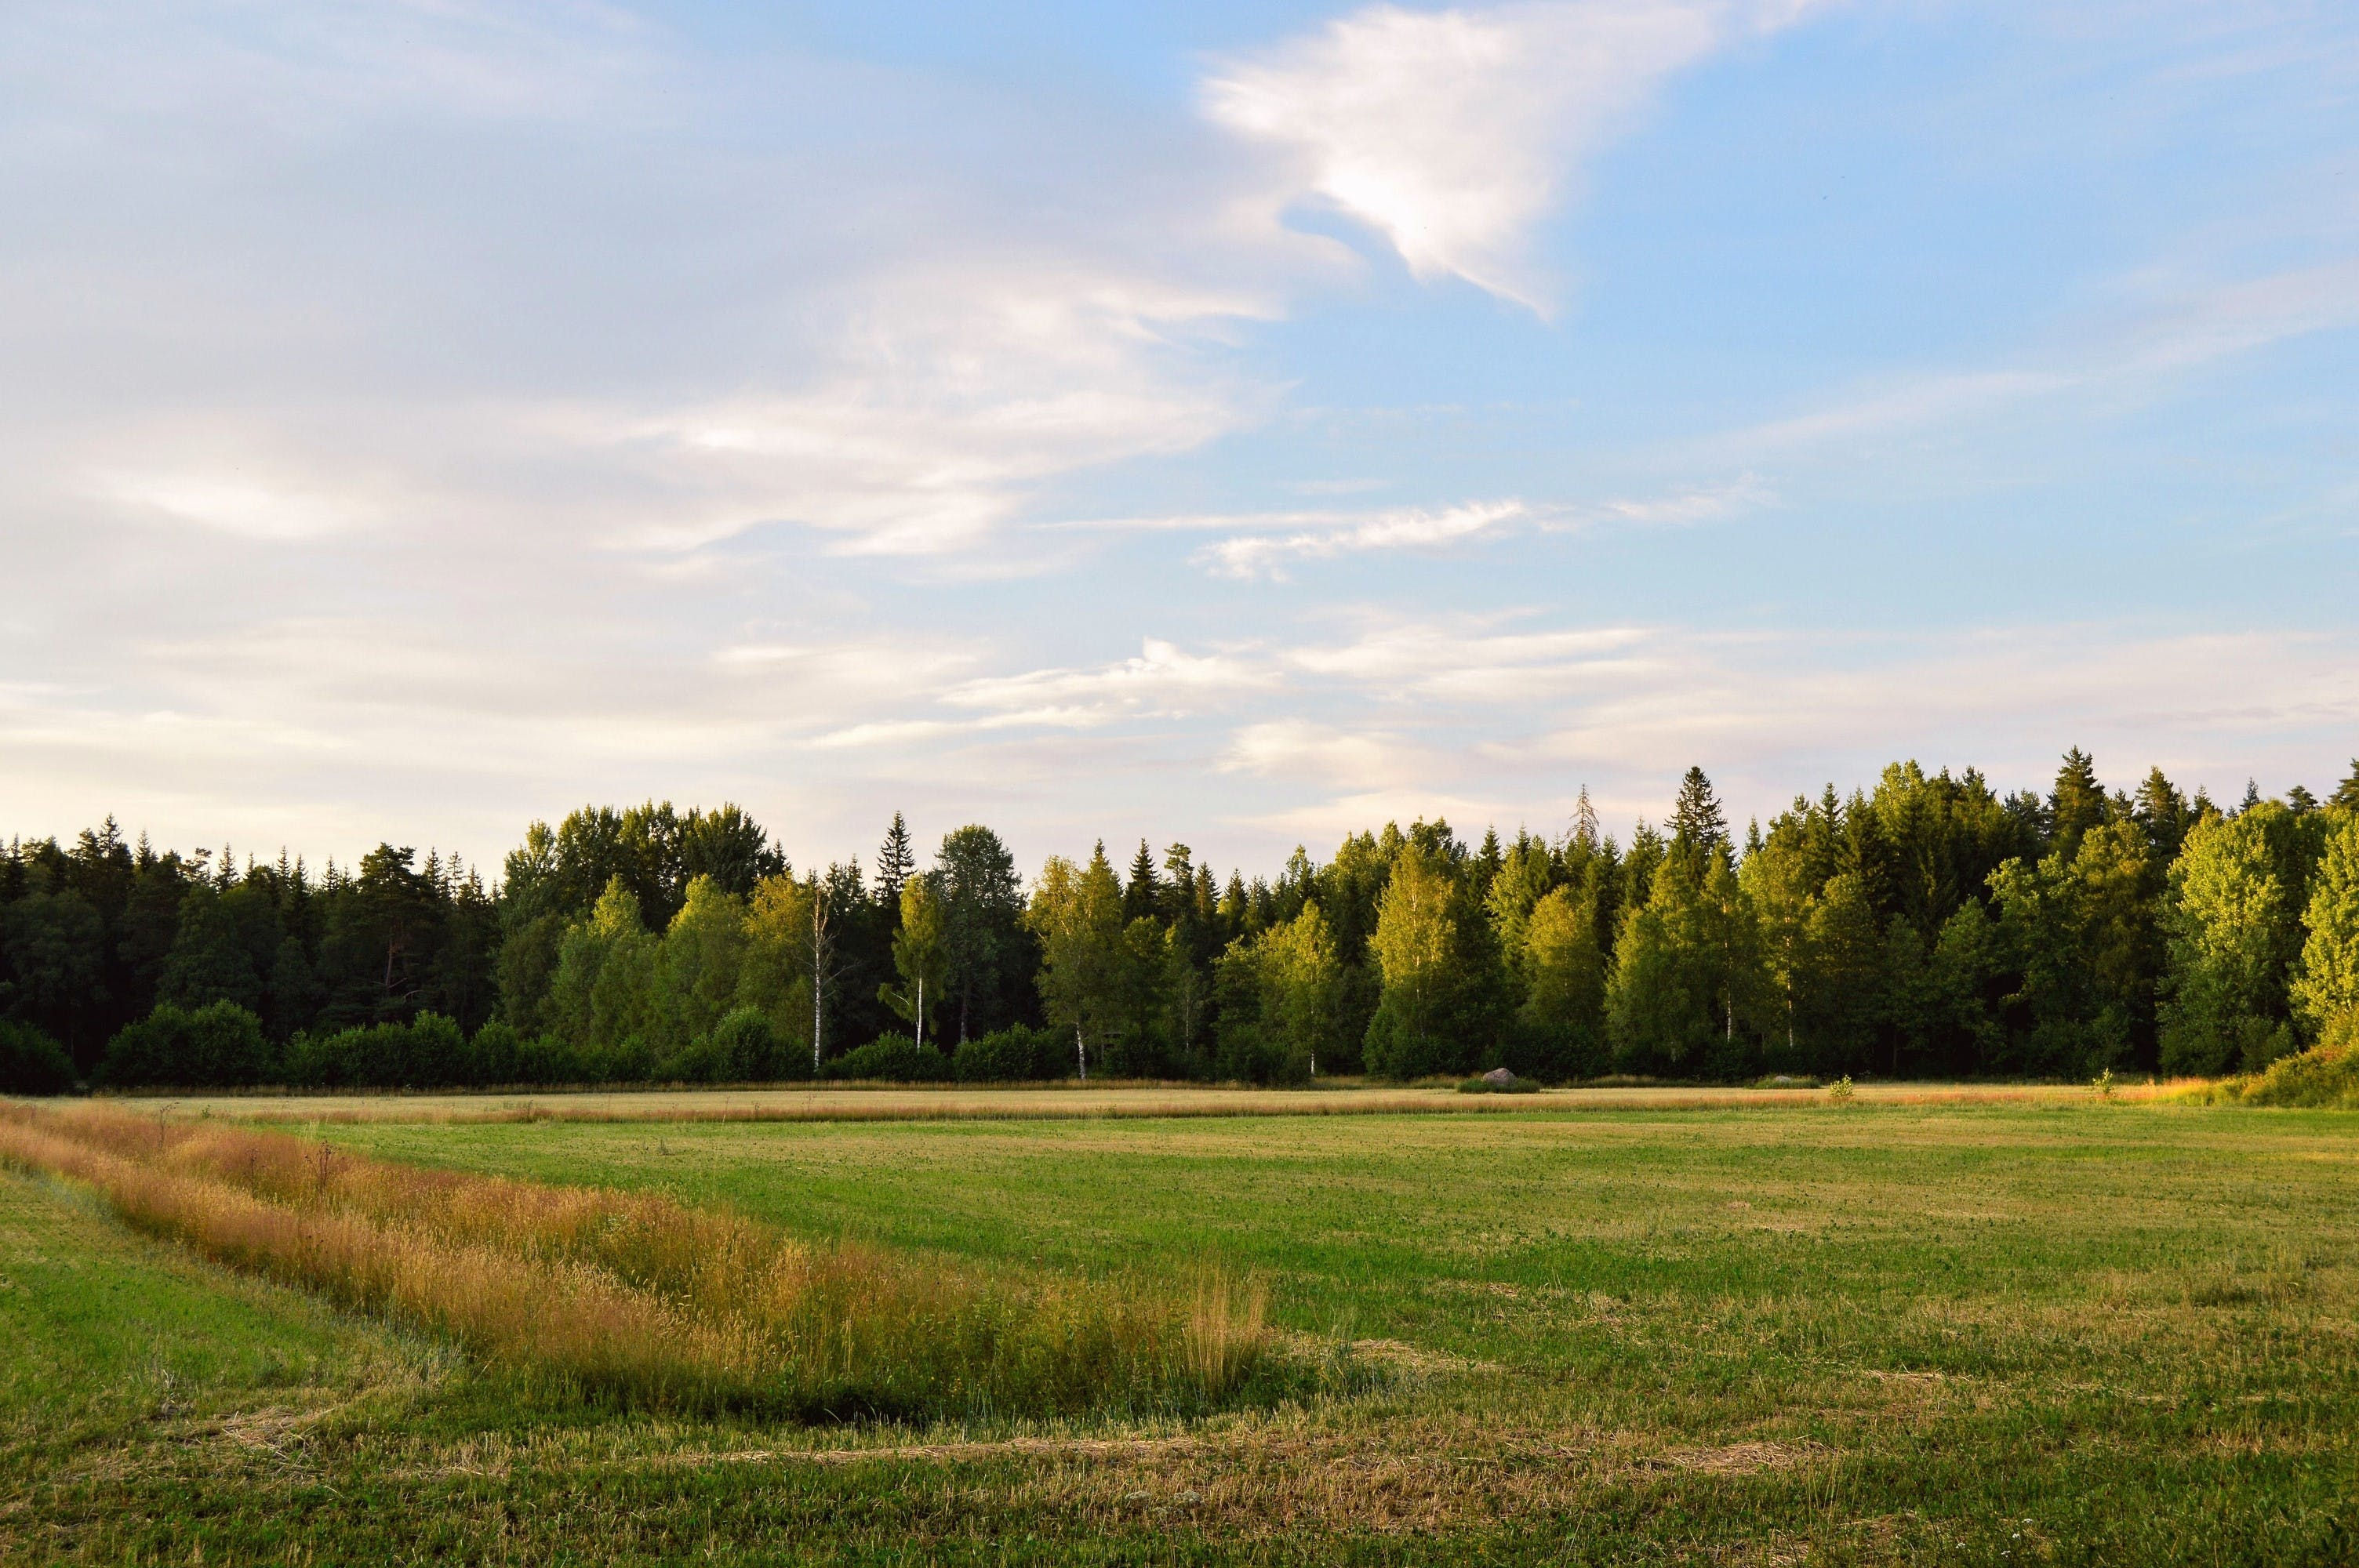 Green Pine Trees and Green Grass Field